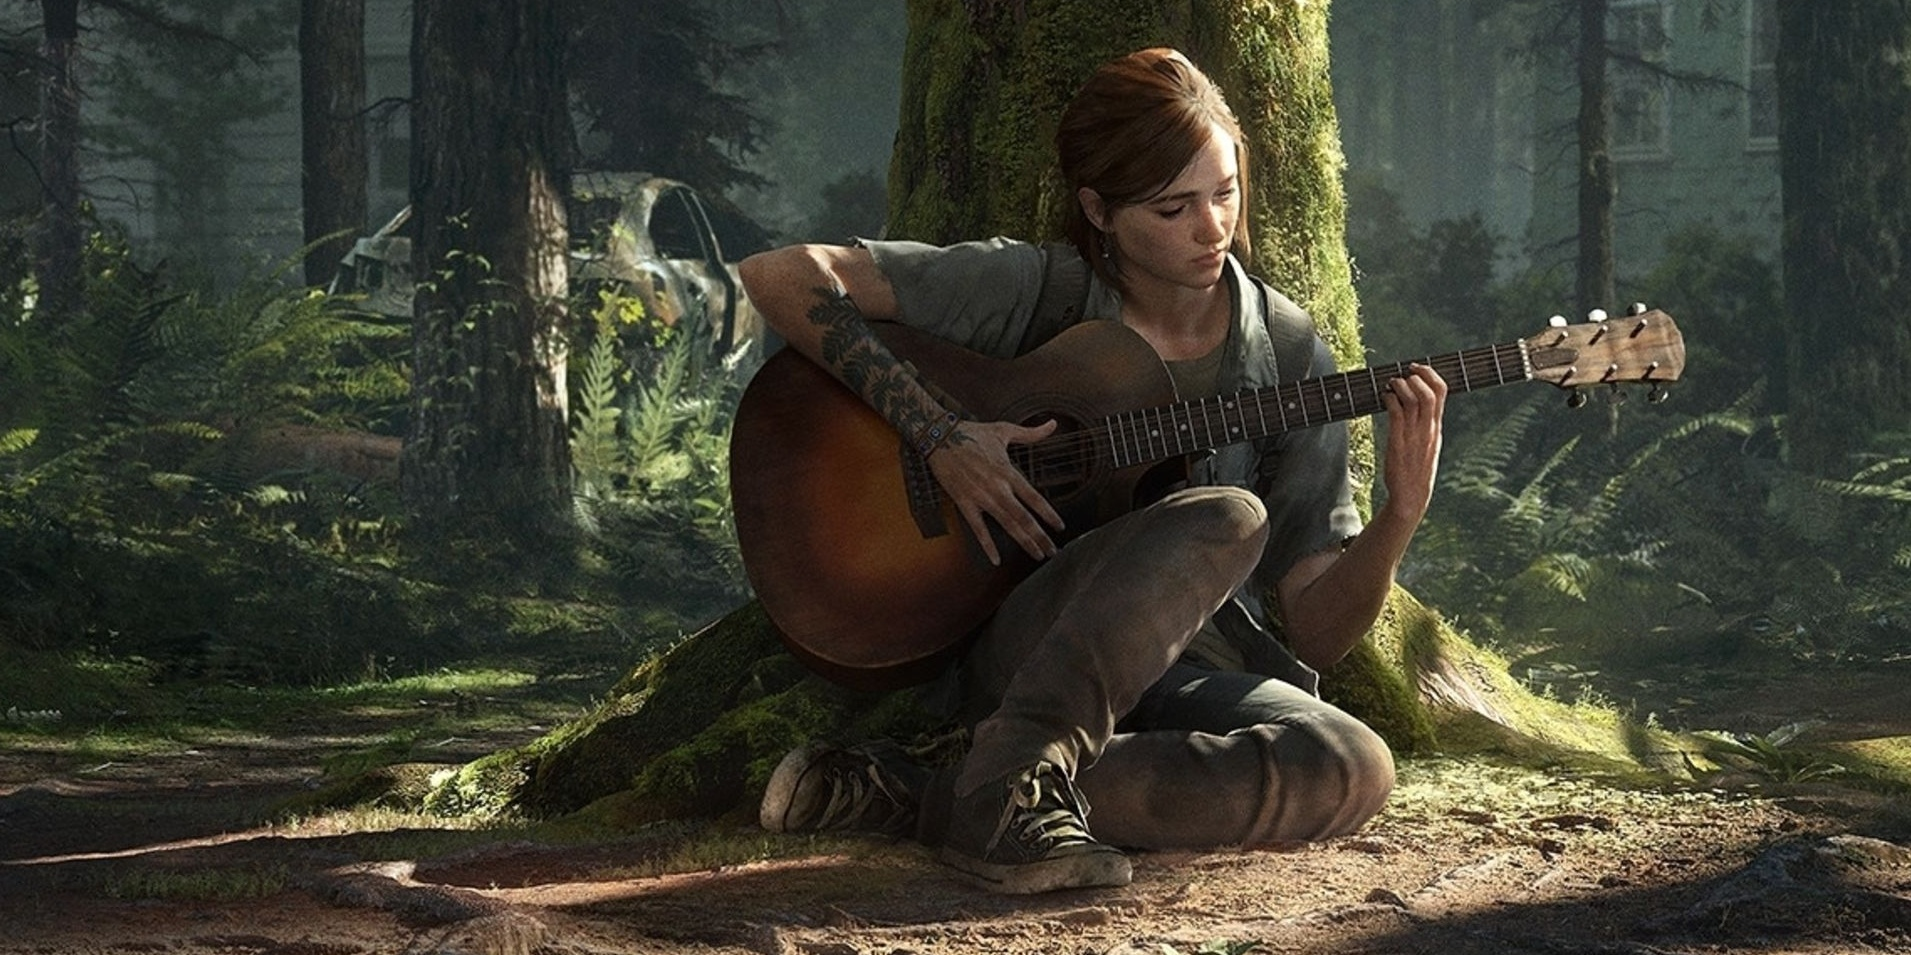 You can kick zombie butt and play 'Harana' on The Last of Us Part 2 – watch